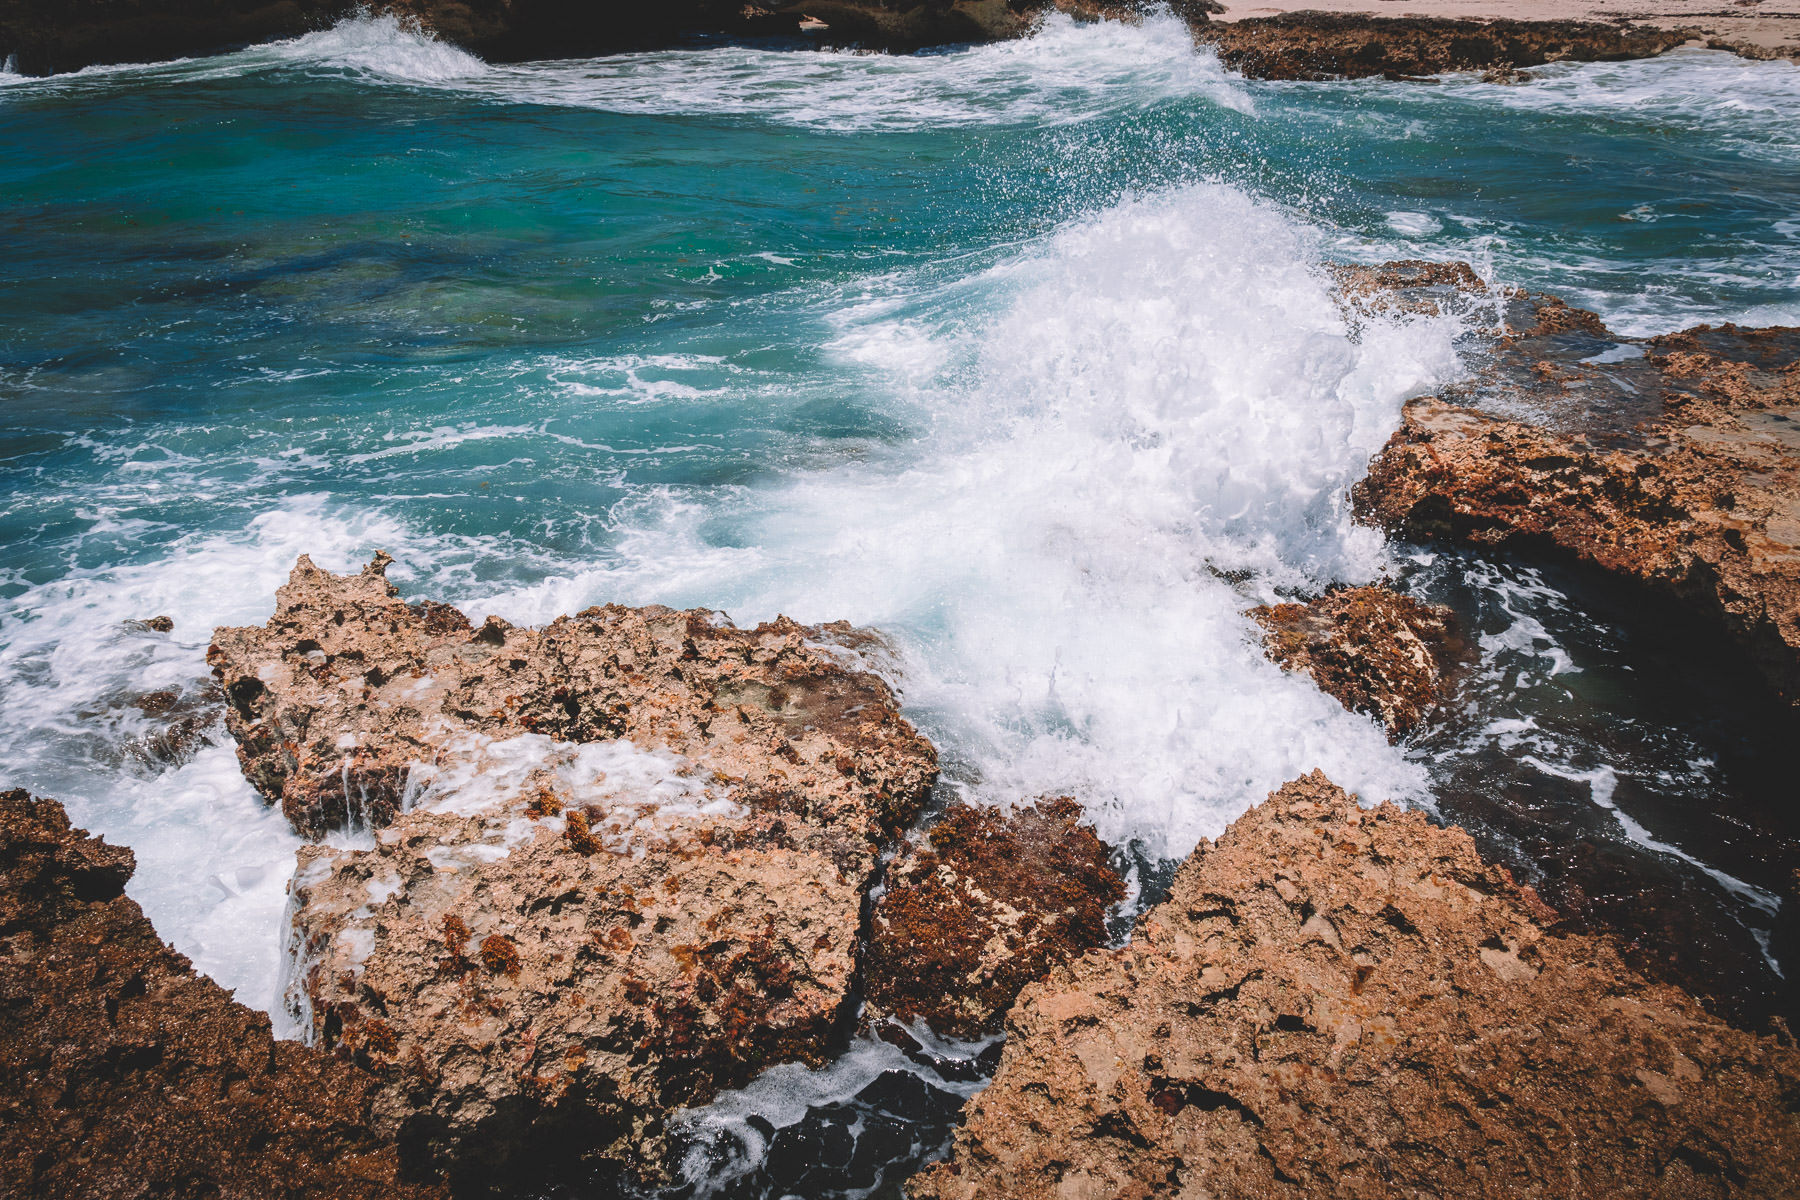 Waves roar ashore at El Mirador, Cozumel, Mexico.